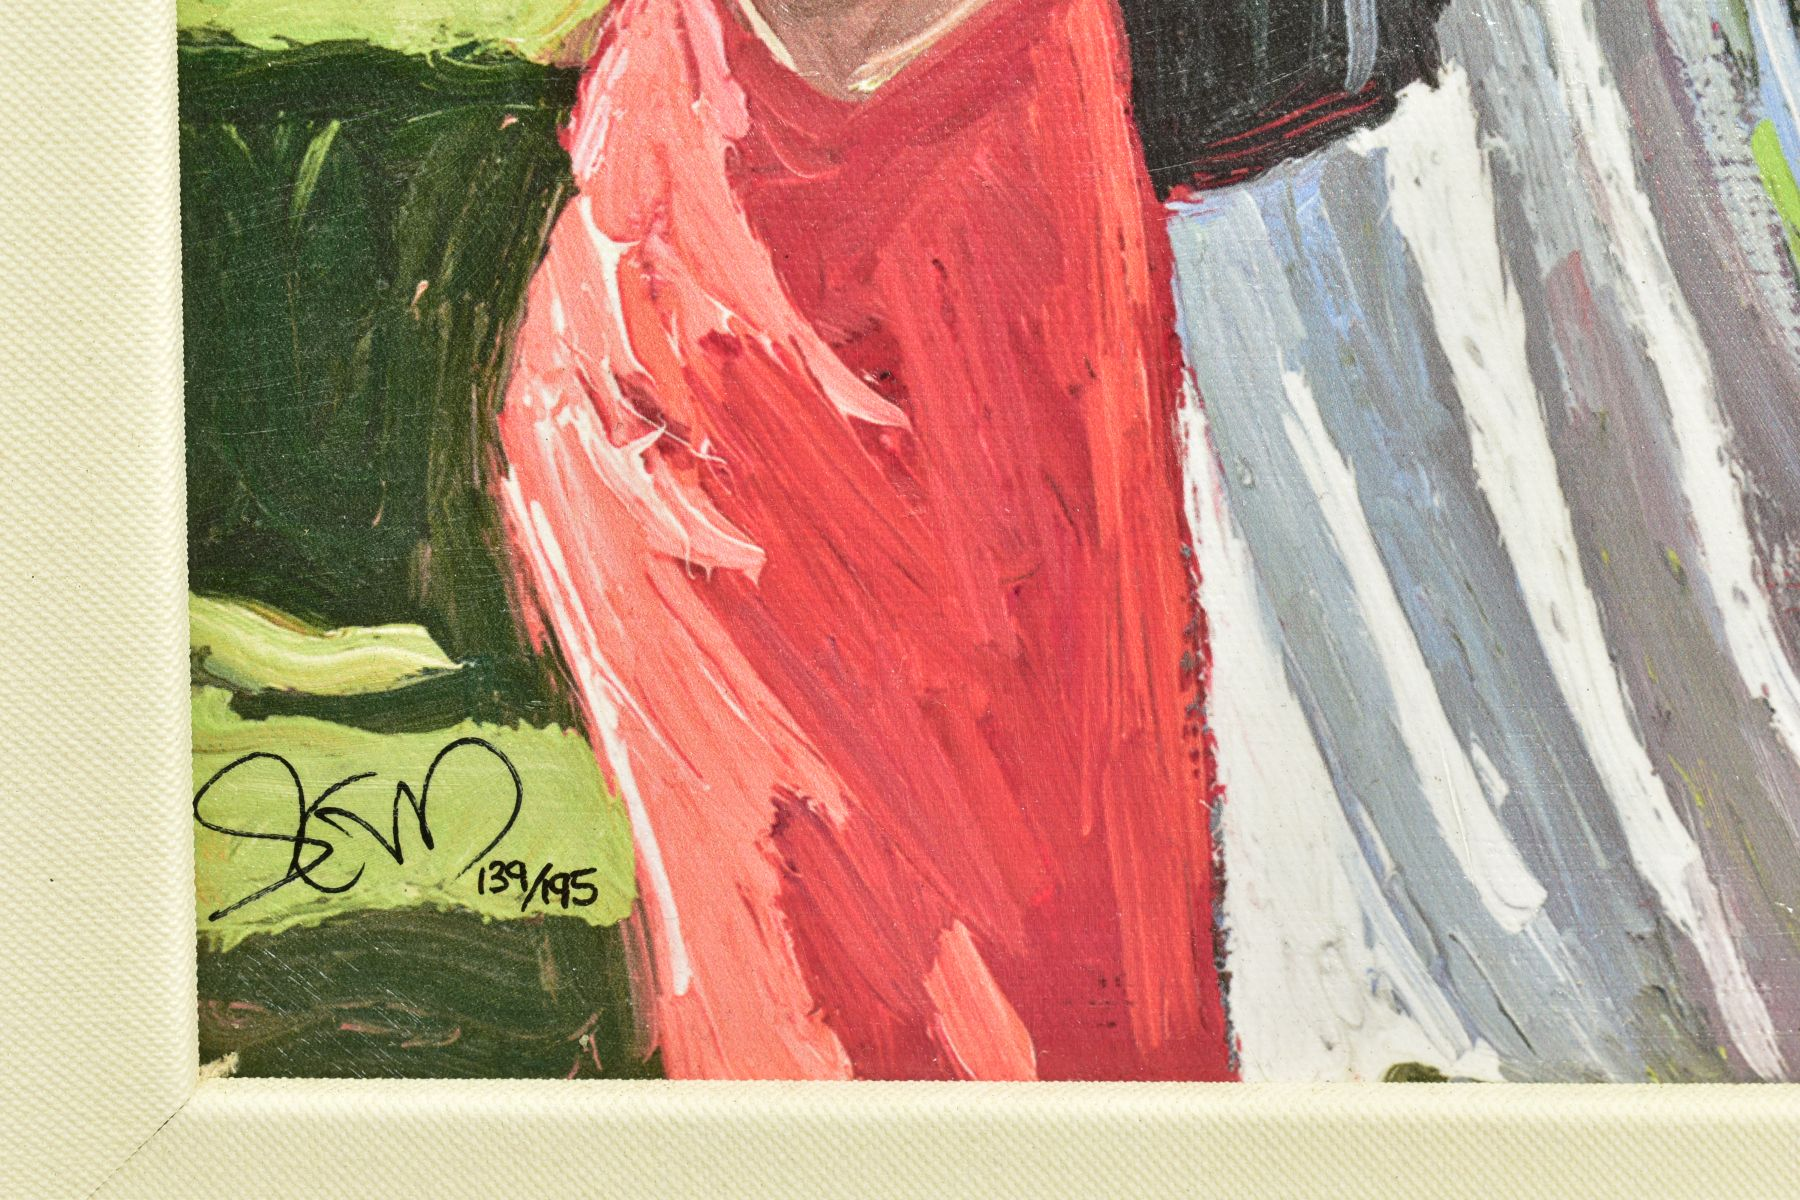 SHERREE VALENTINE DAINES (BRITISH 1959), 'Society Ladies', a Limited Edition print of female figures - Image 4 of 6